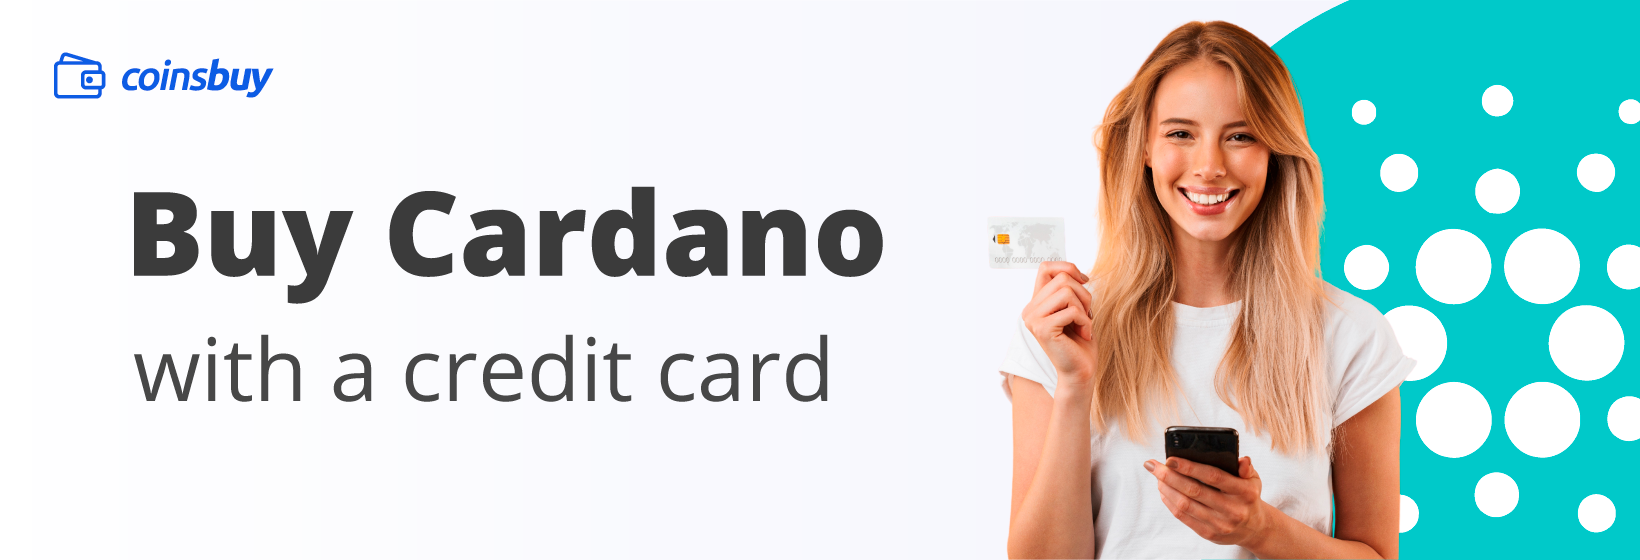 Buy Cardano with credit card